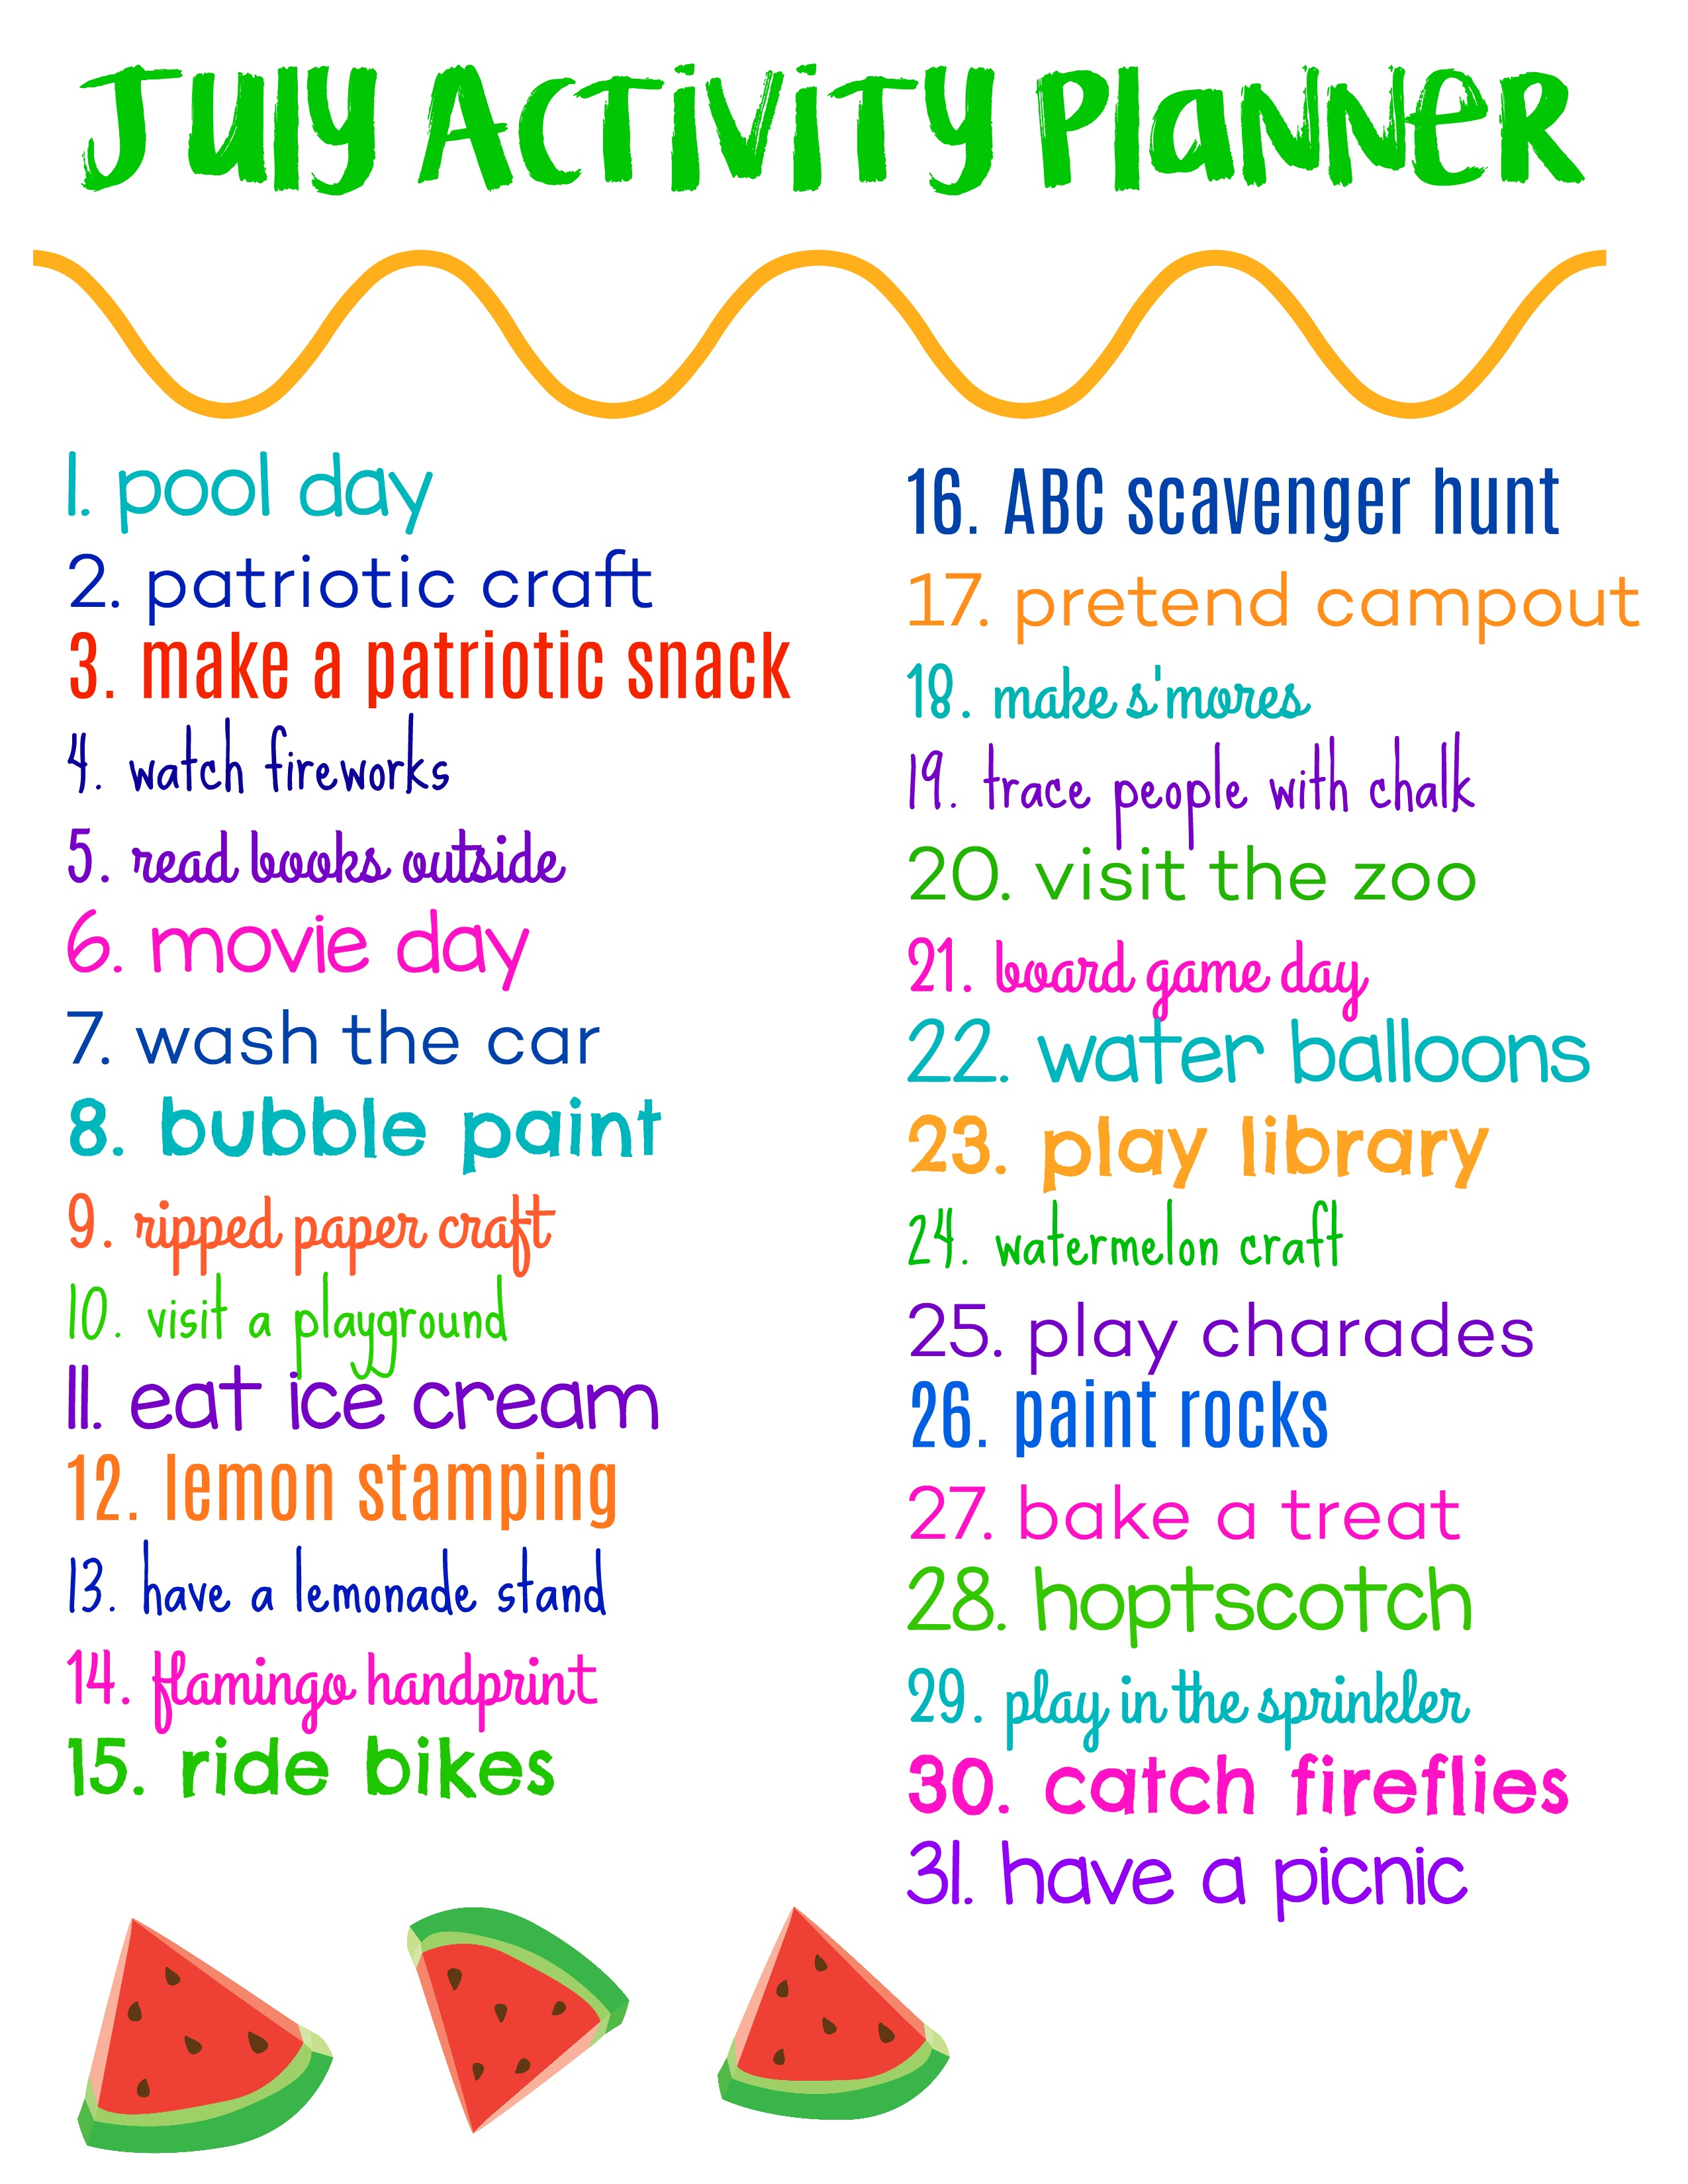 July Activity Planner for Kids (& Free Printable) - The